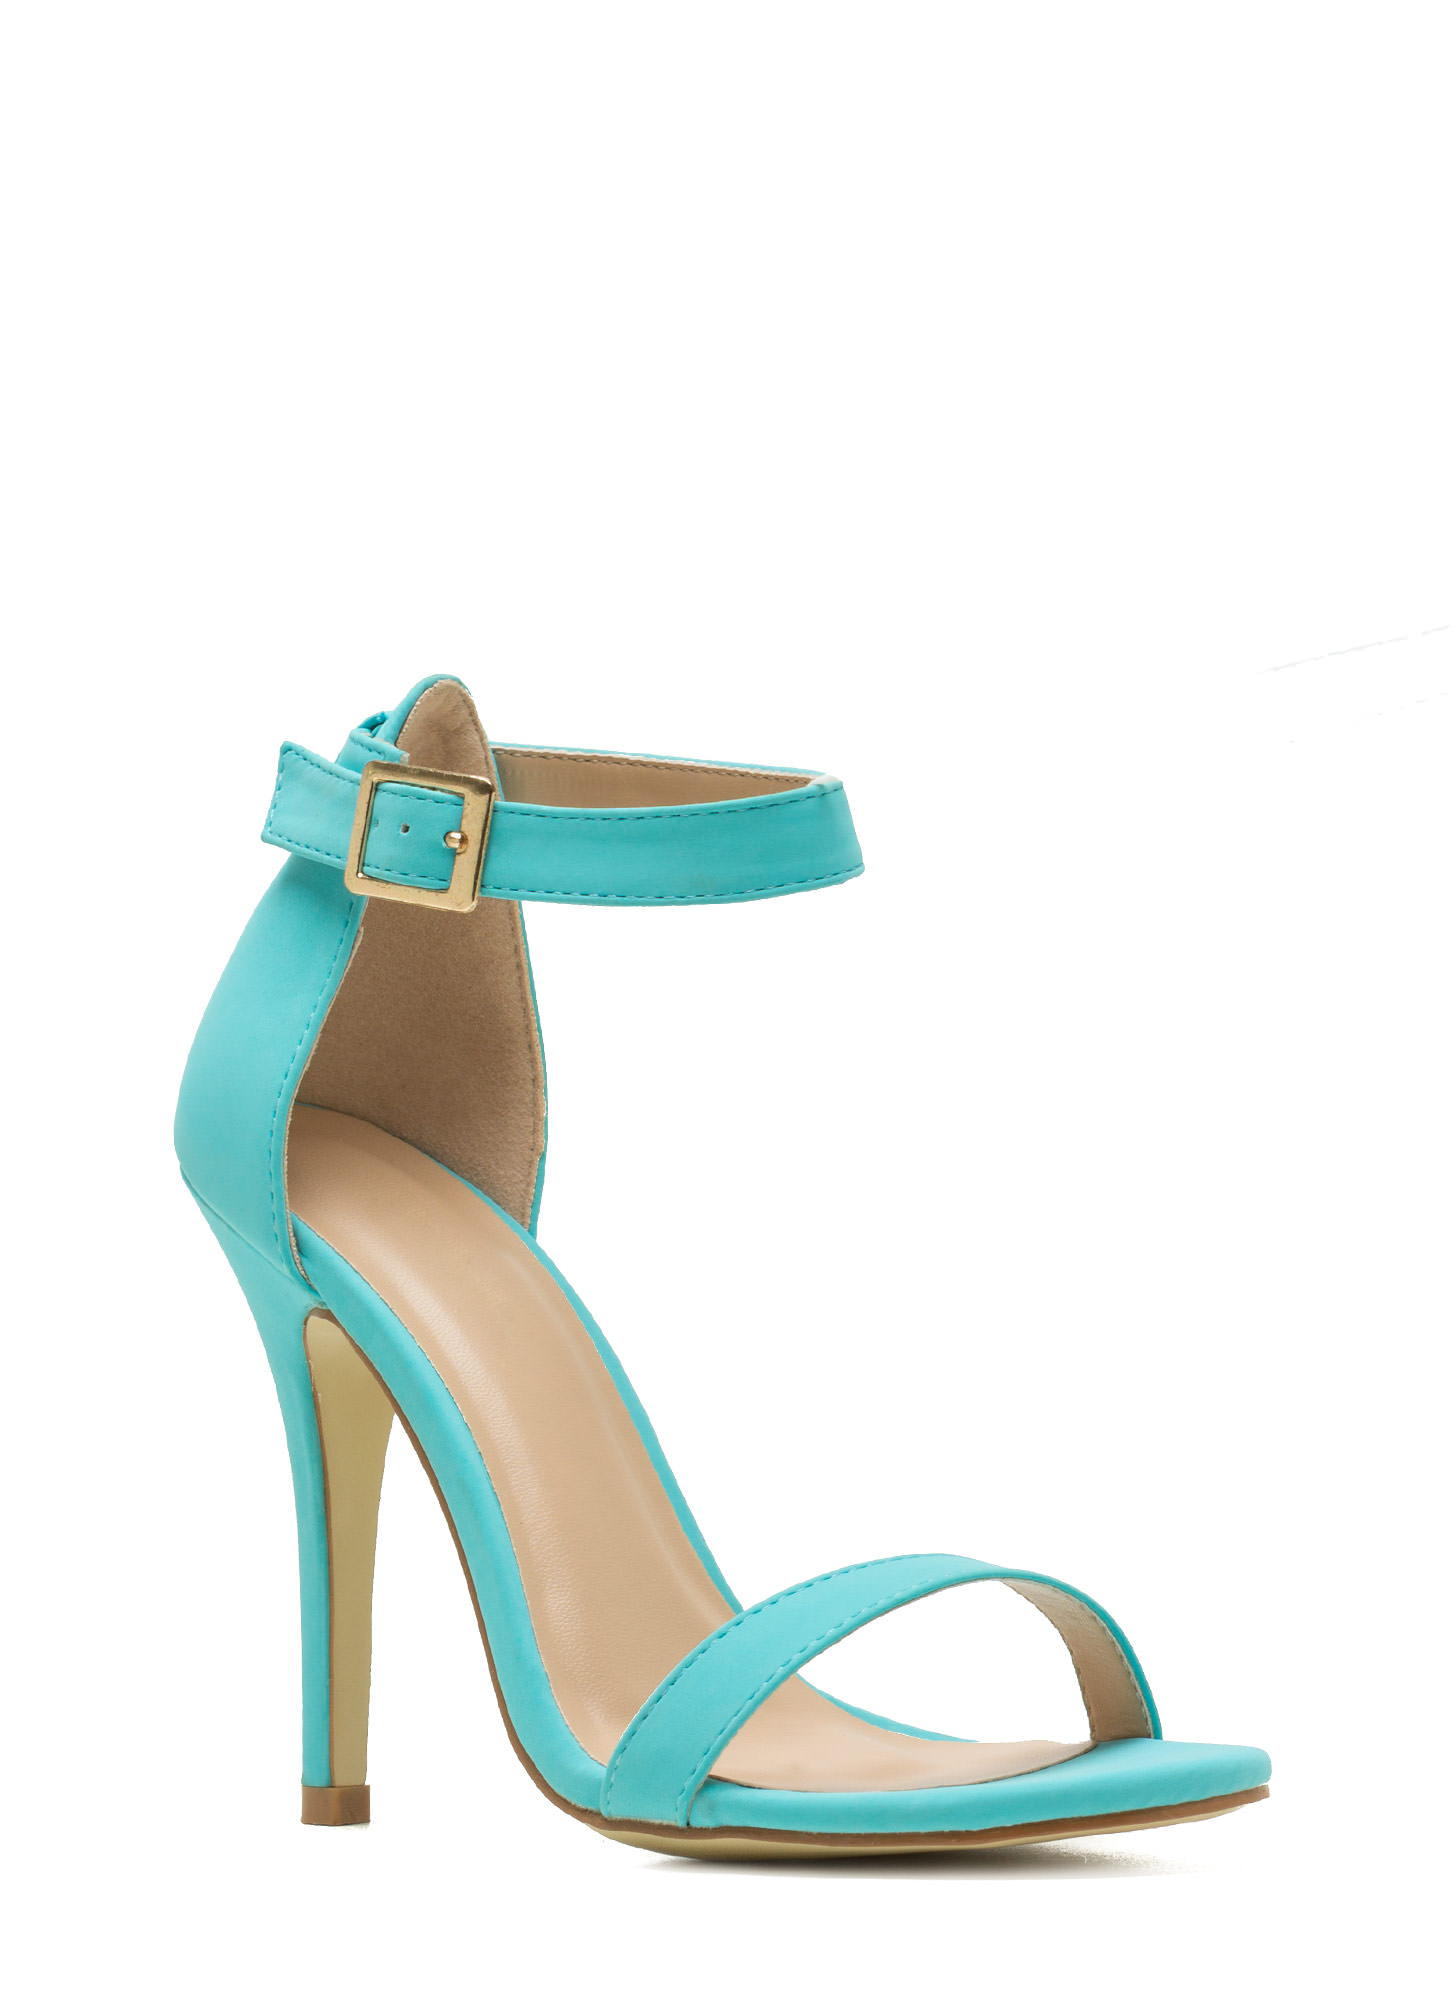 Less Is More Single-Strap Heels AQUA